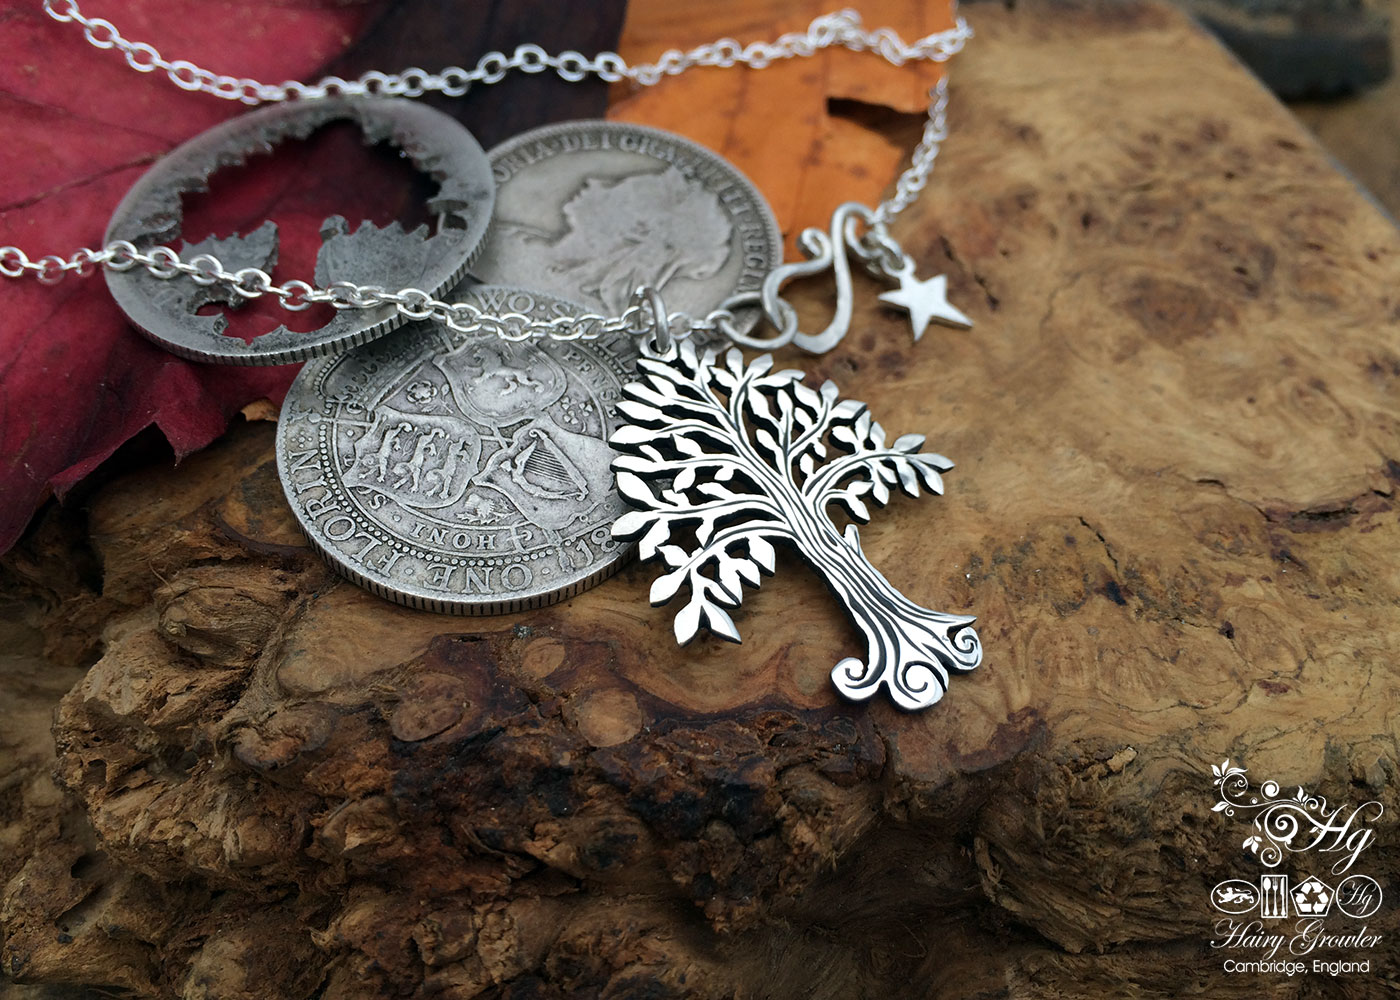 Handcrafted and recycled silver Willow tree necklace